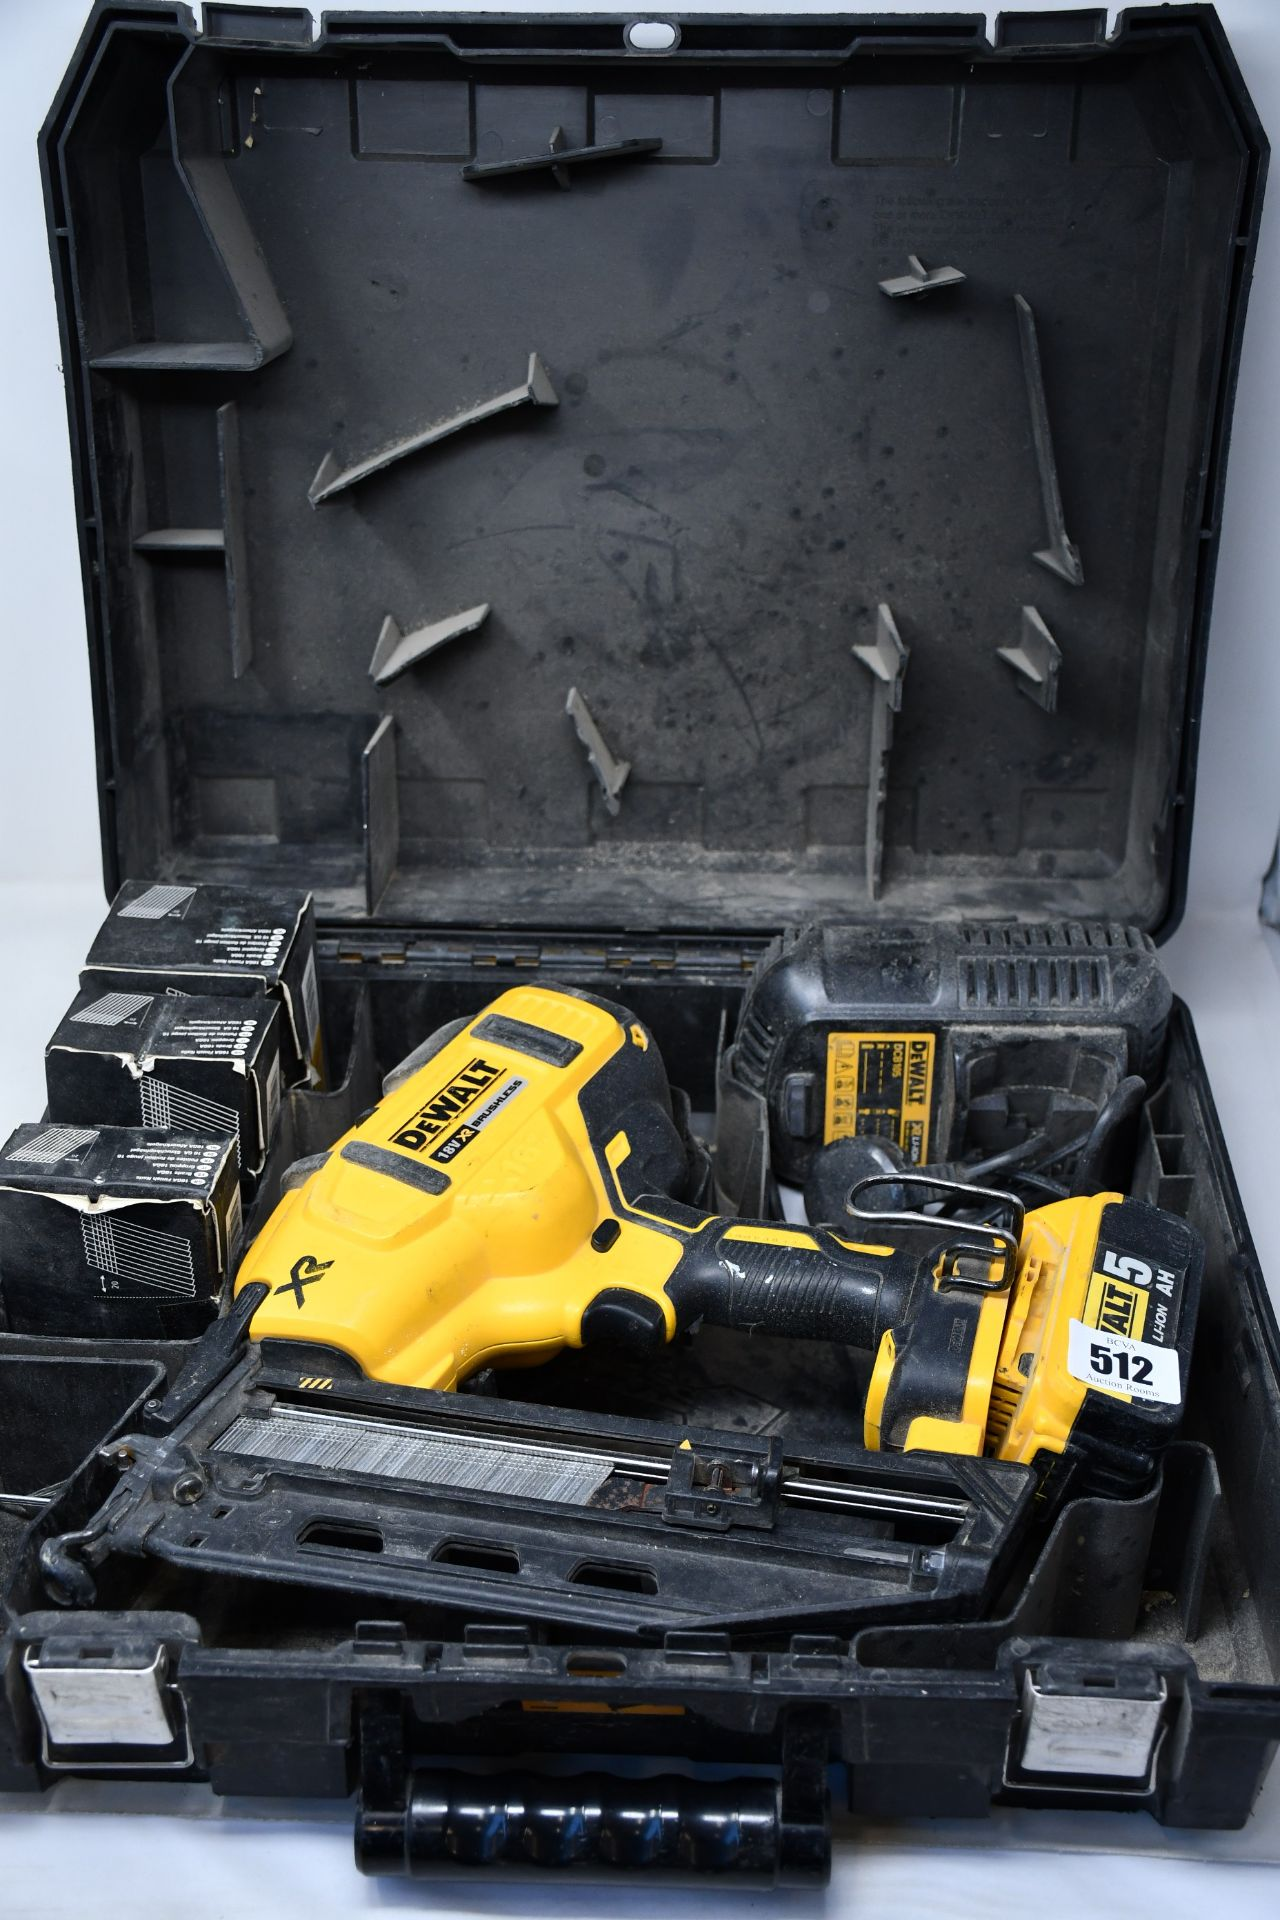 A pre-owned DeWalt angled nail gun (DCN66OP2) kit with rechargeable battery and charger.